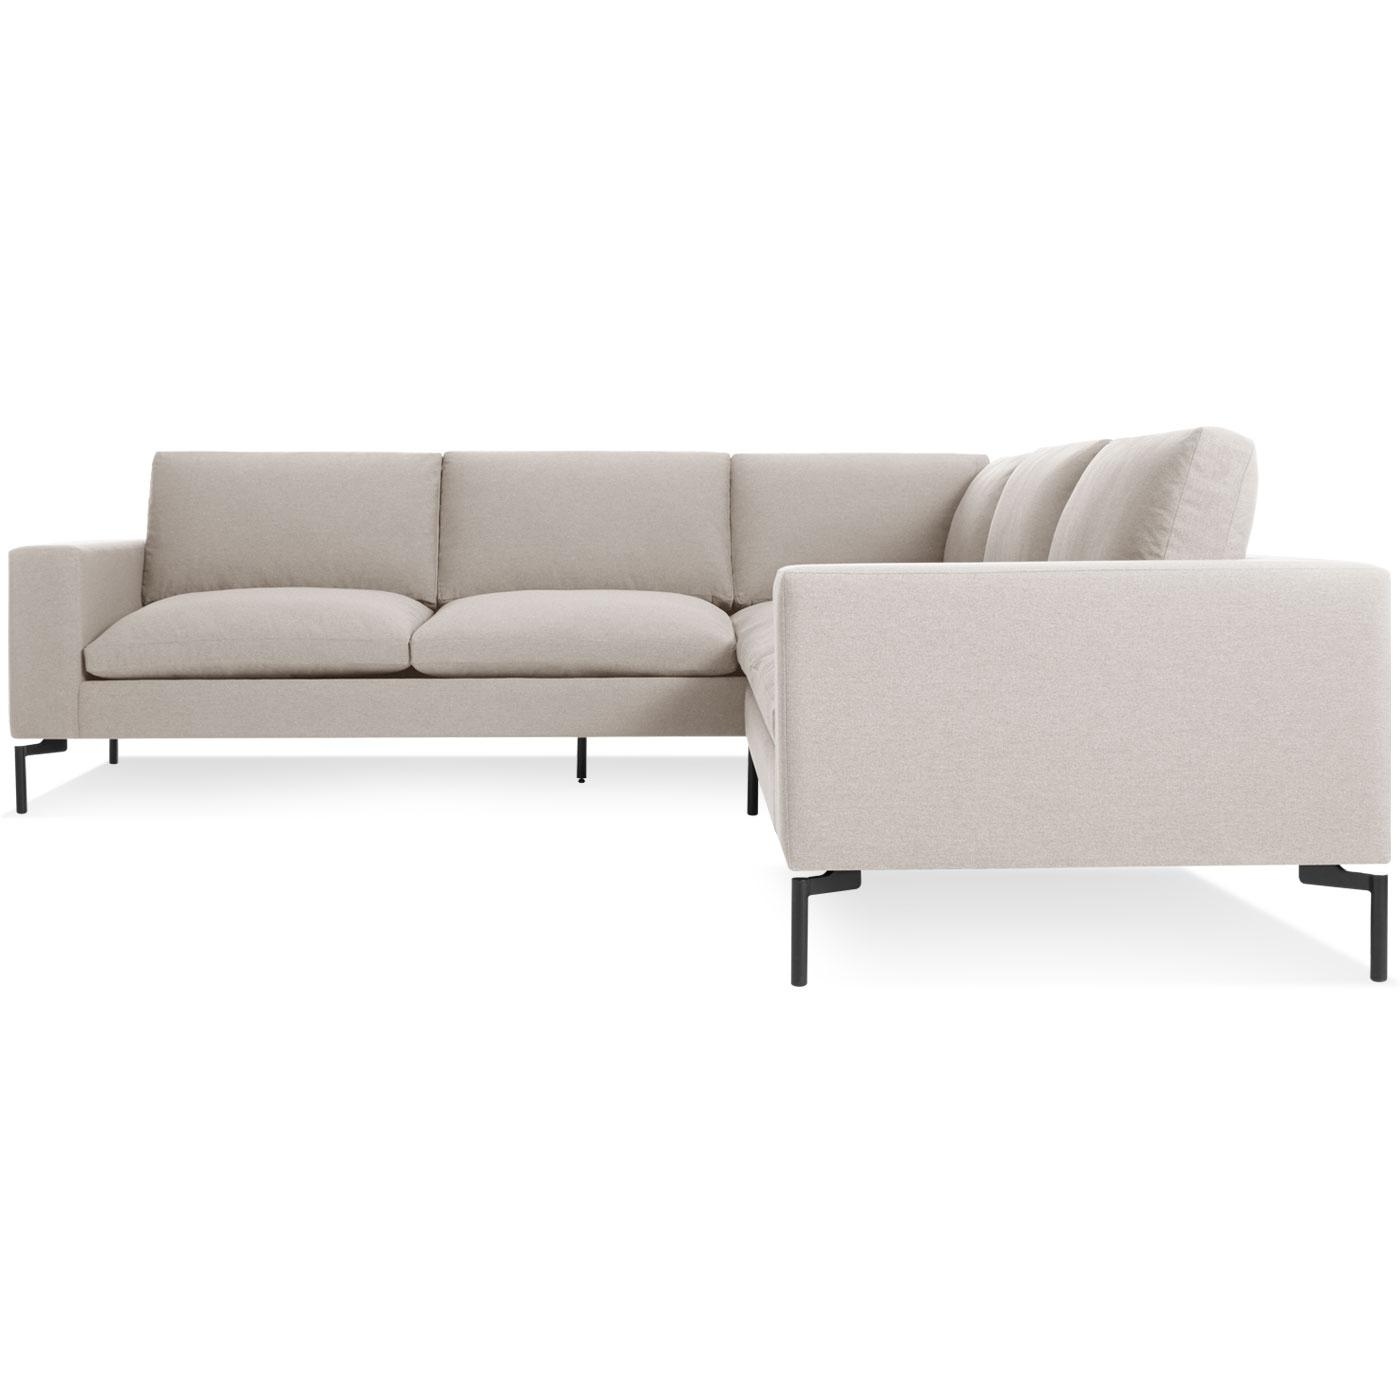 New Standard Small Sectional Sofa – Modern Sofas | Blu Dot Within Modern Small Sectional Sofas (View 2 of 20)